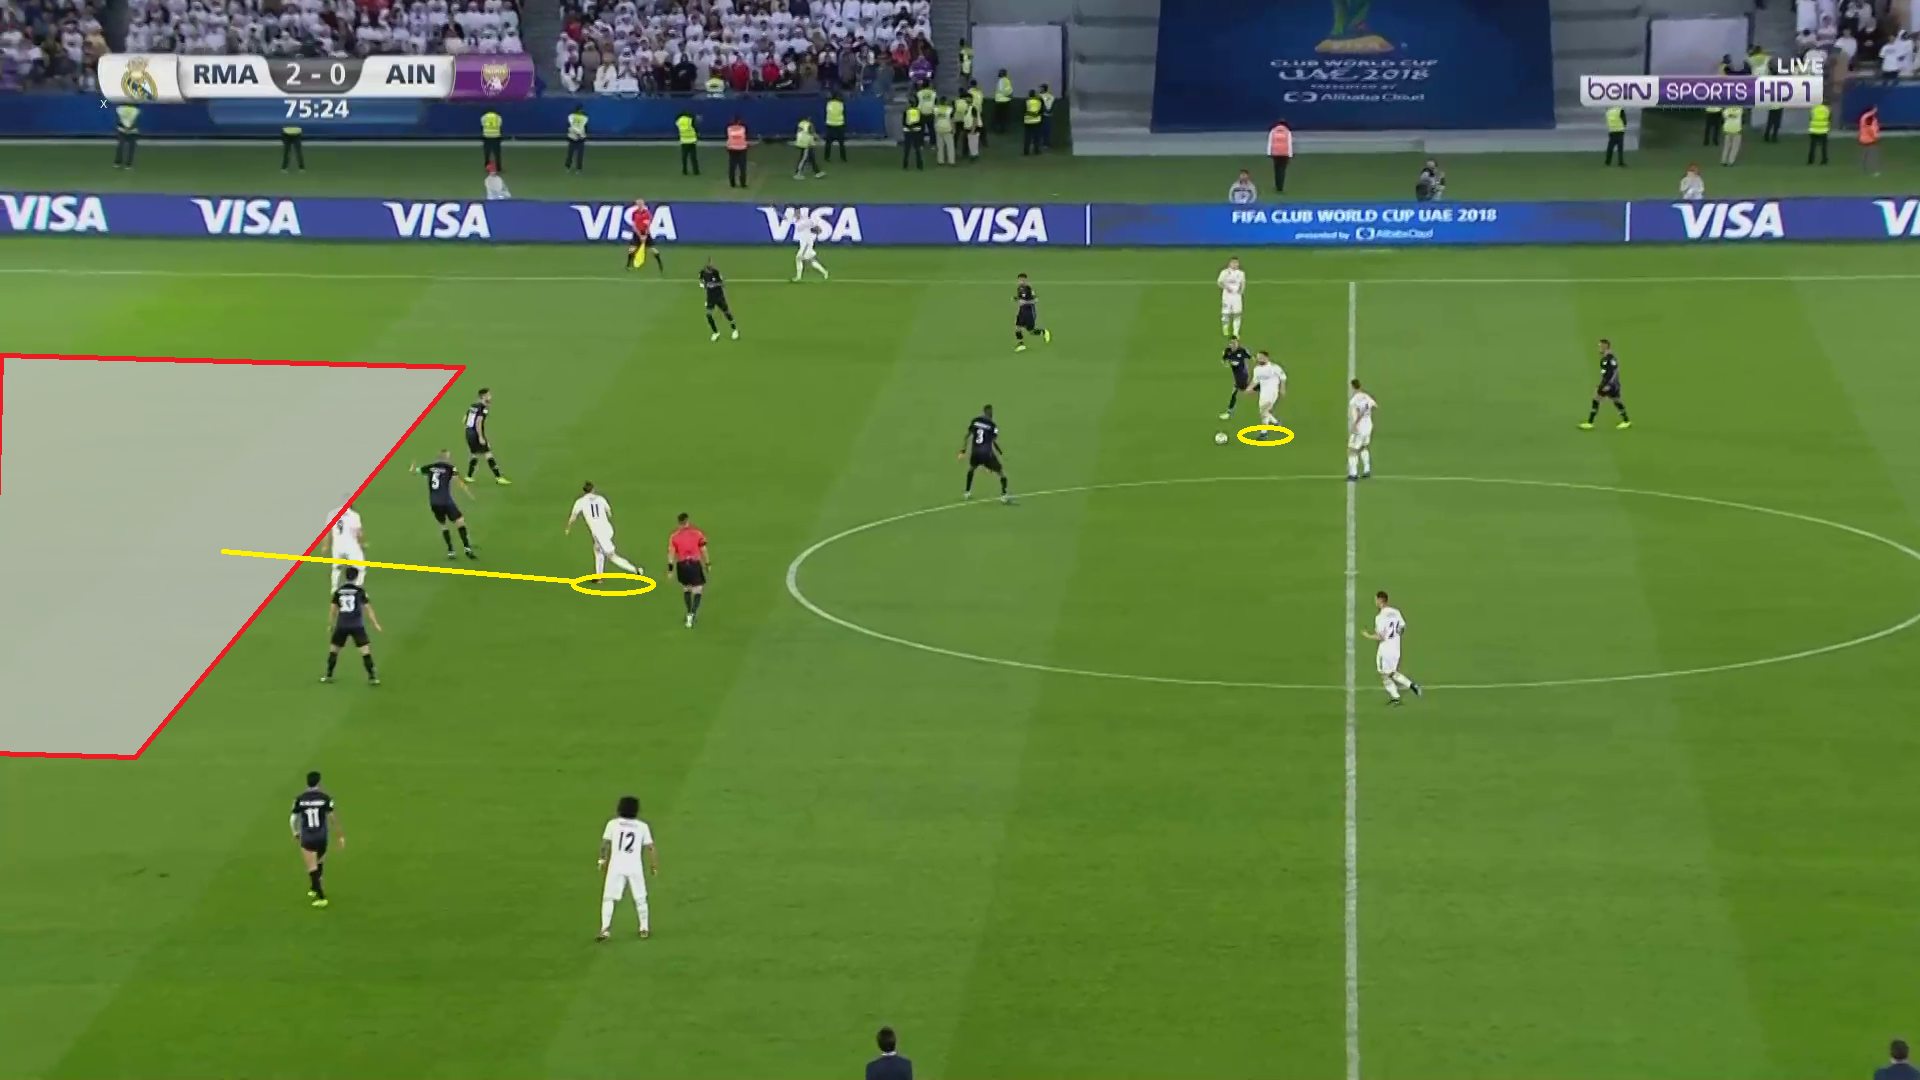 Real Madrid Al Ain Club World Cup tactical analysis statistics